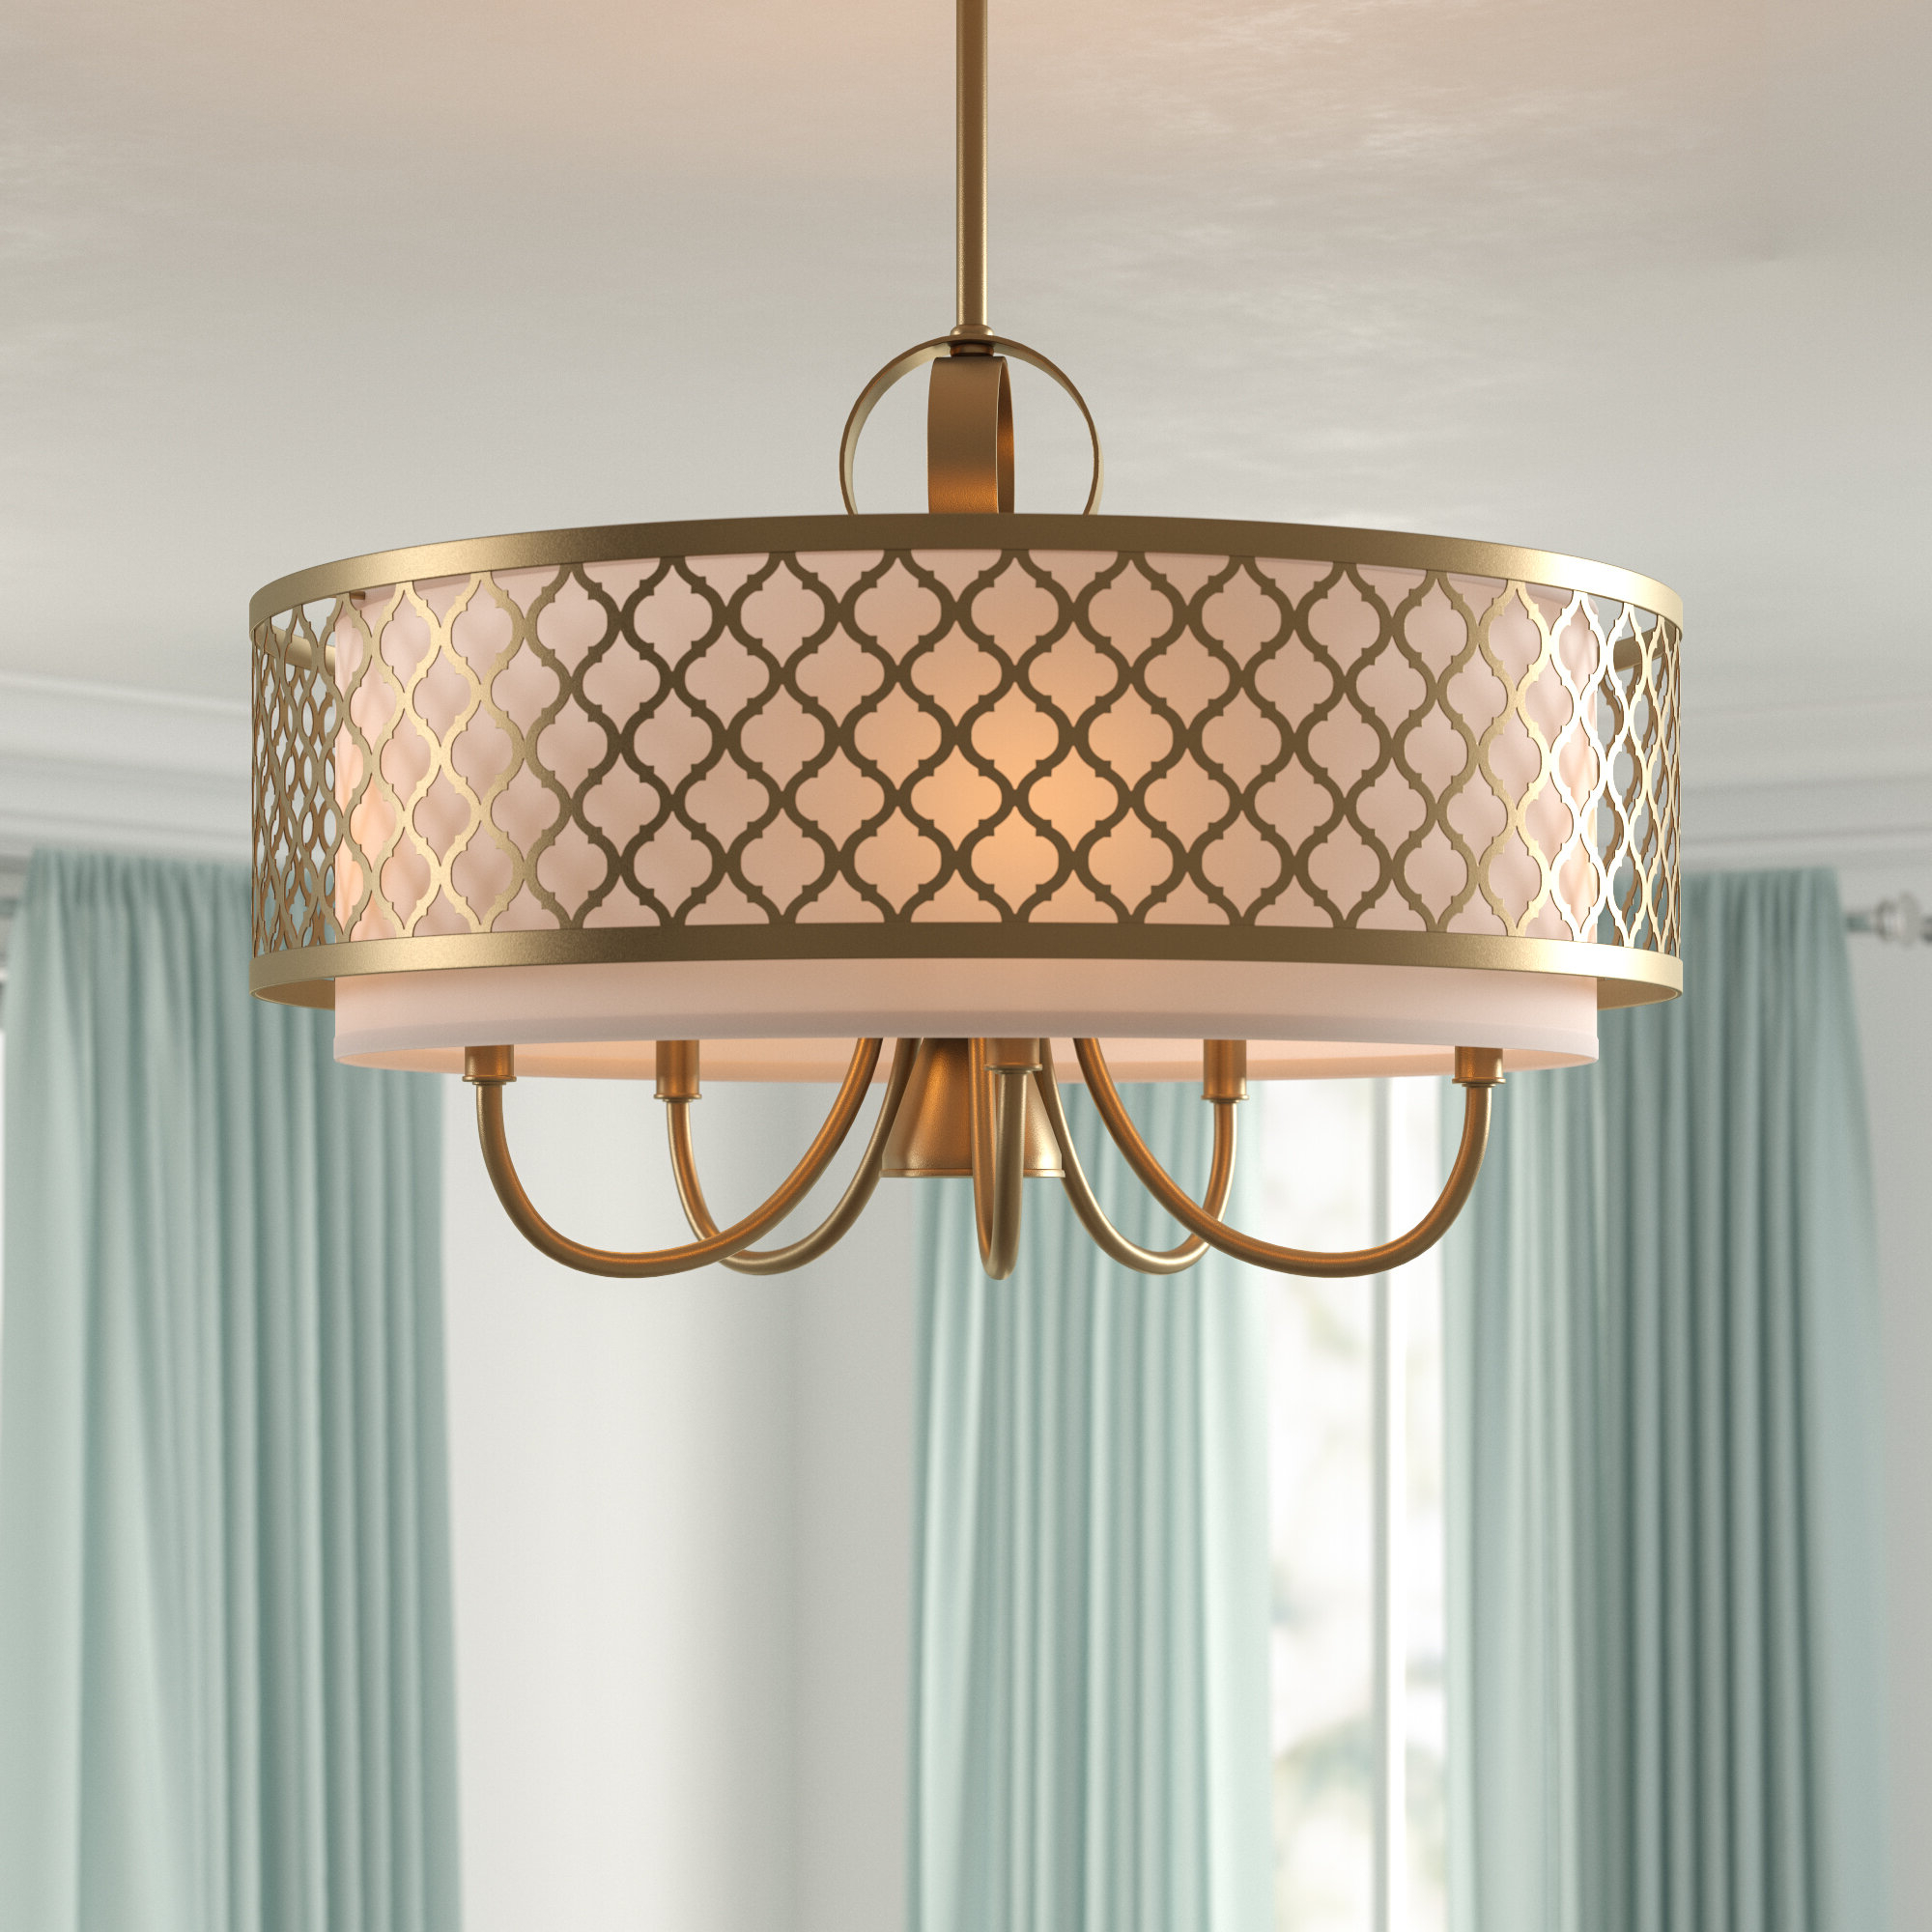 Tymvou 6 Light Drum Chandelier For Most Recently Released Hermione 5 Light Drum Chandeliers (View 10 of 25)